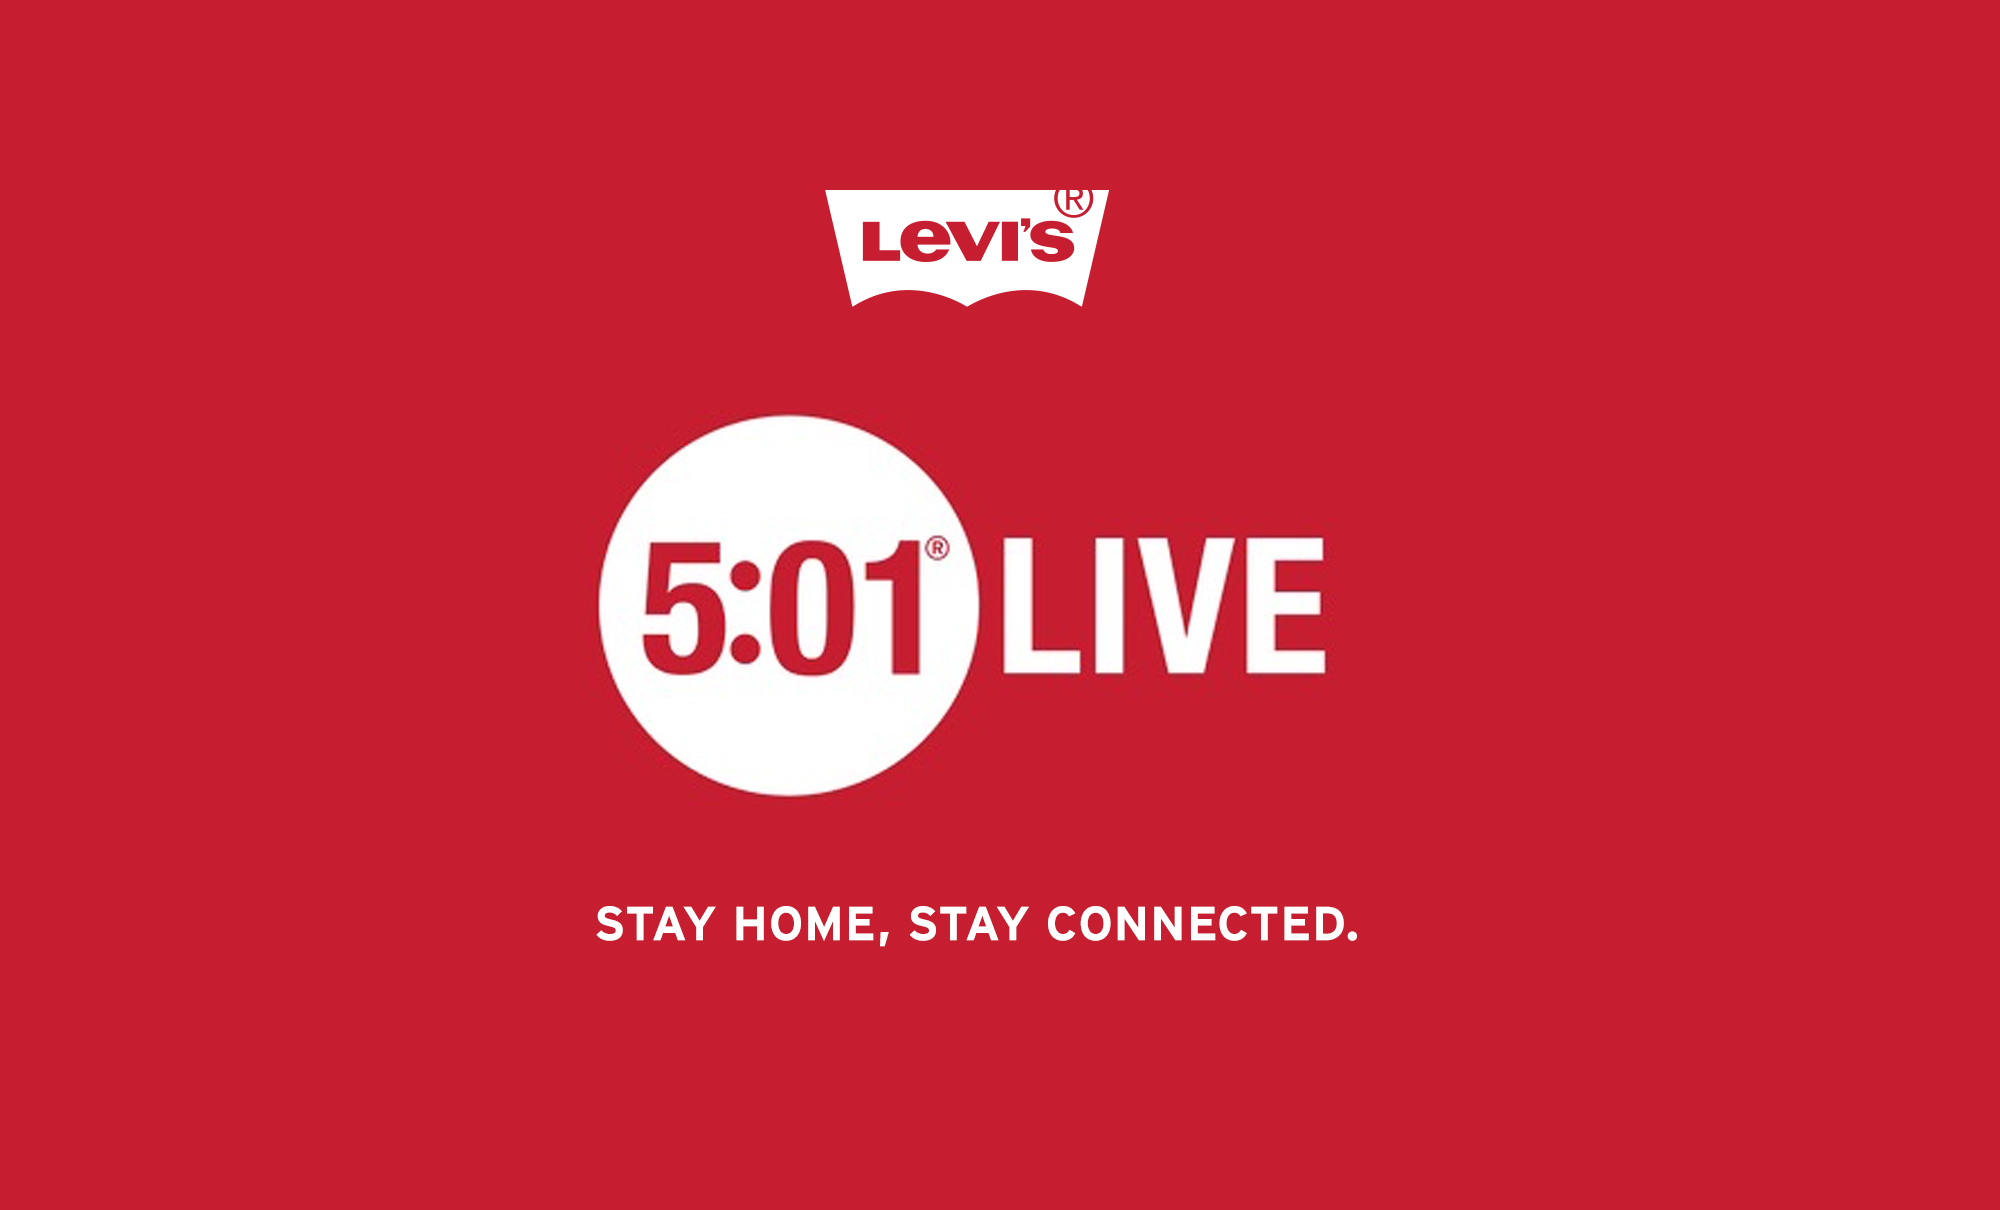 Brands like Levi's are partnering with different musicians to put on live-streamed concerts for fans during the global coronavirus pandemic